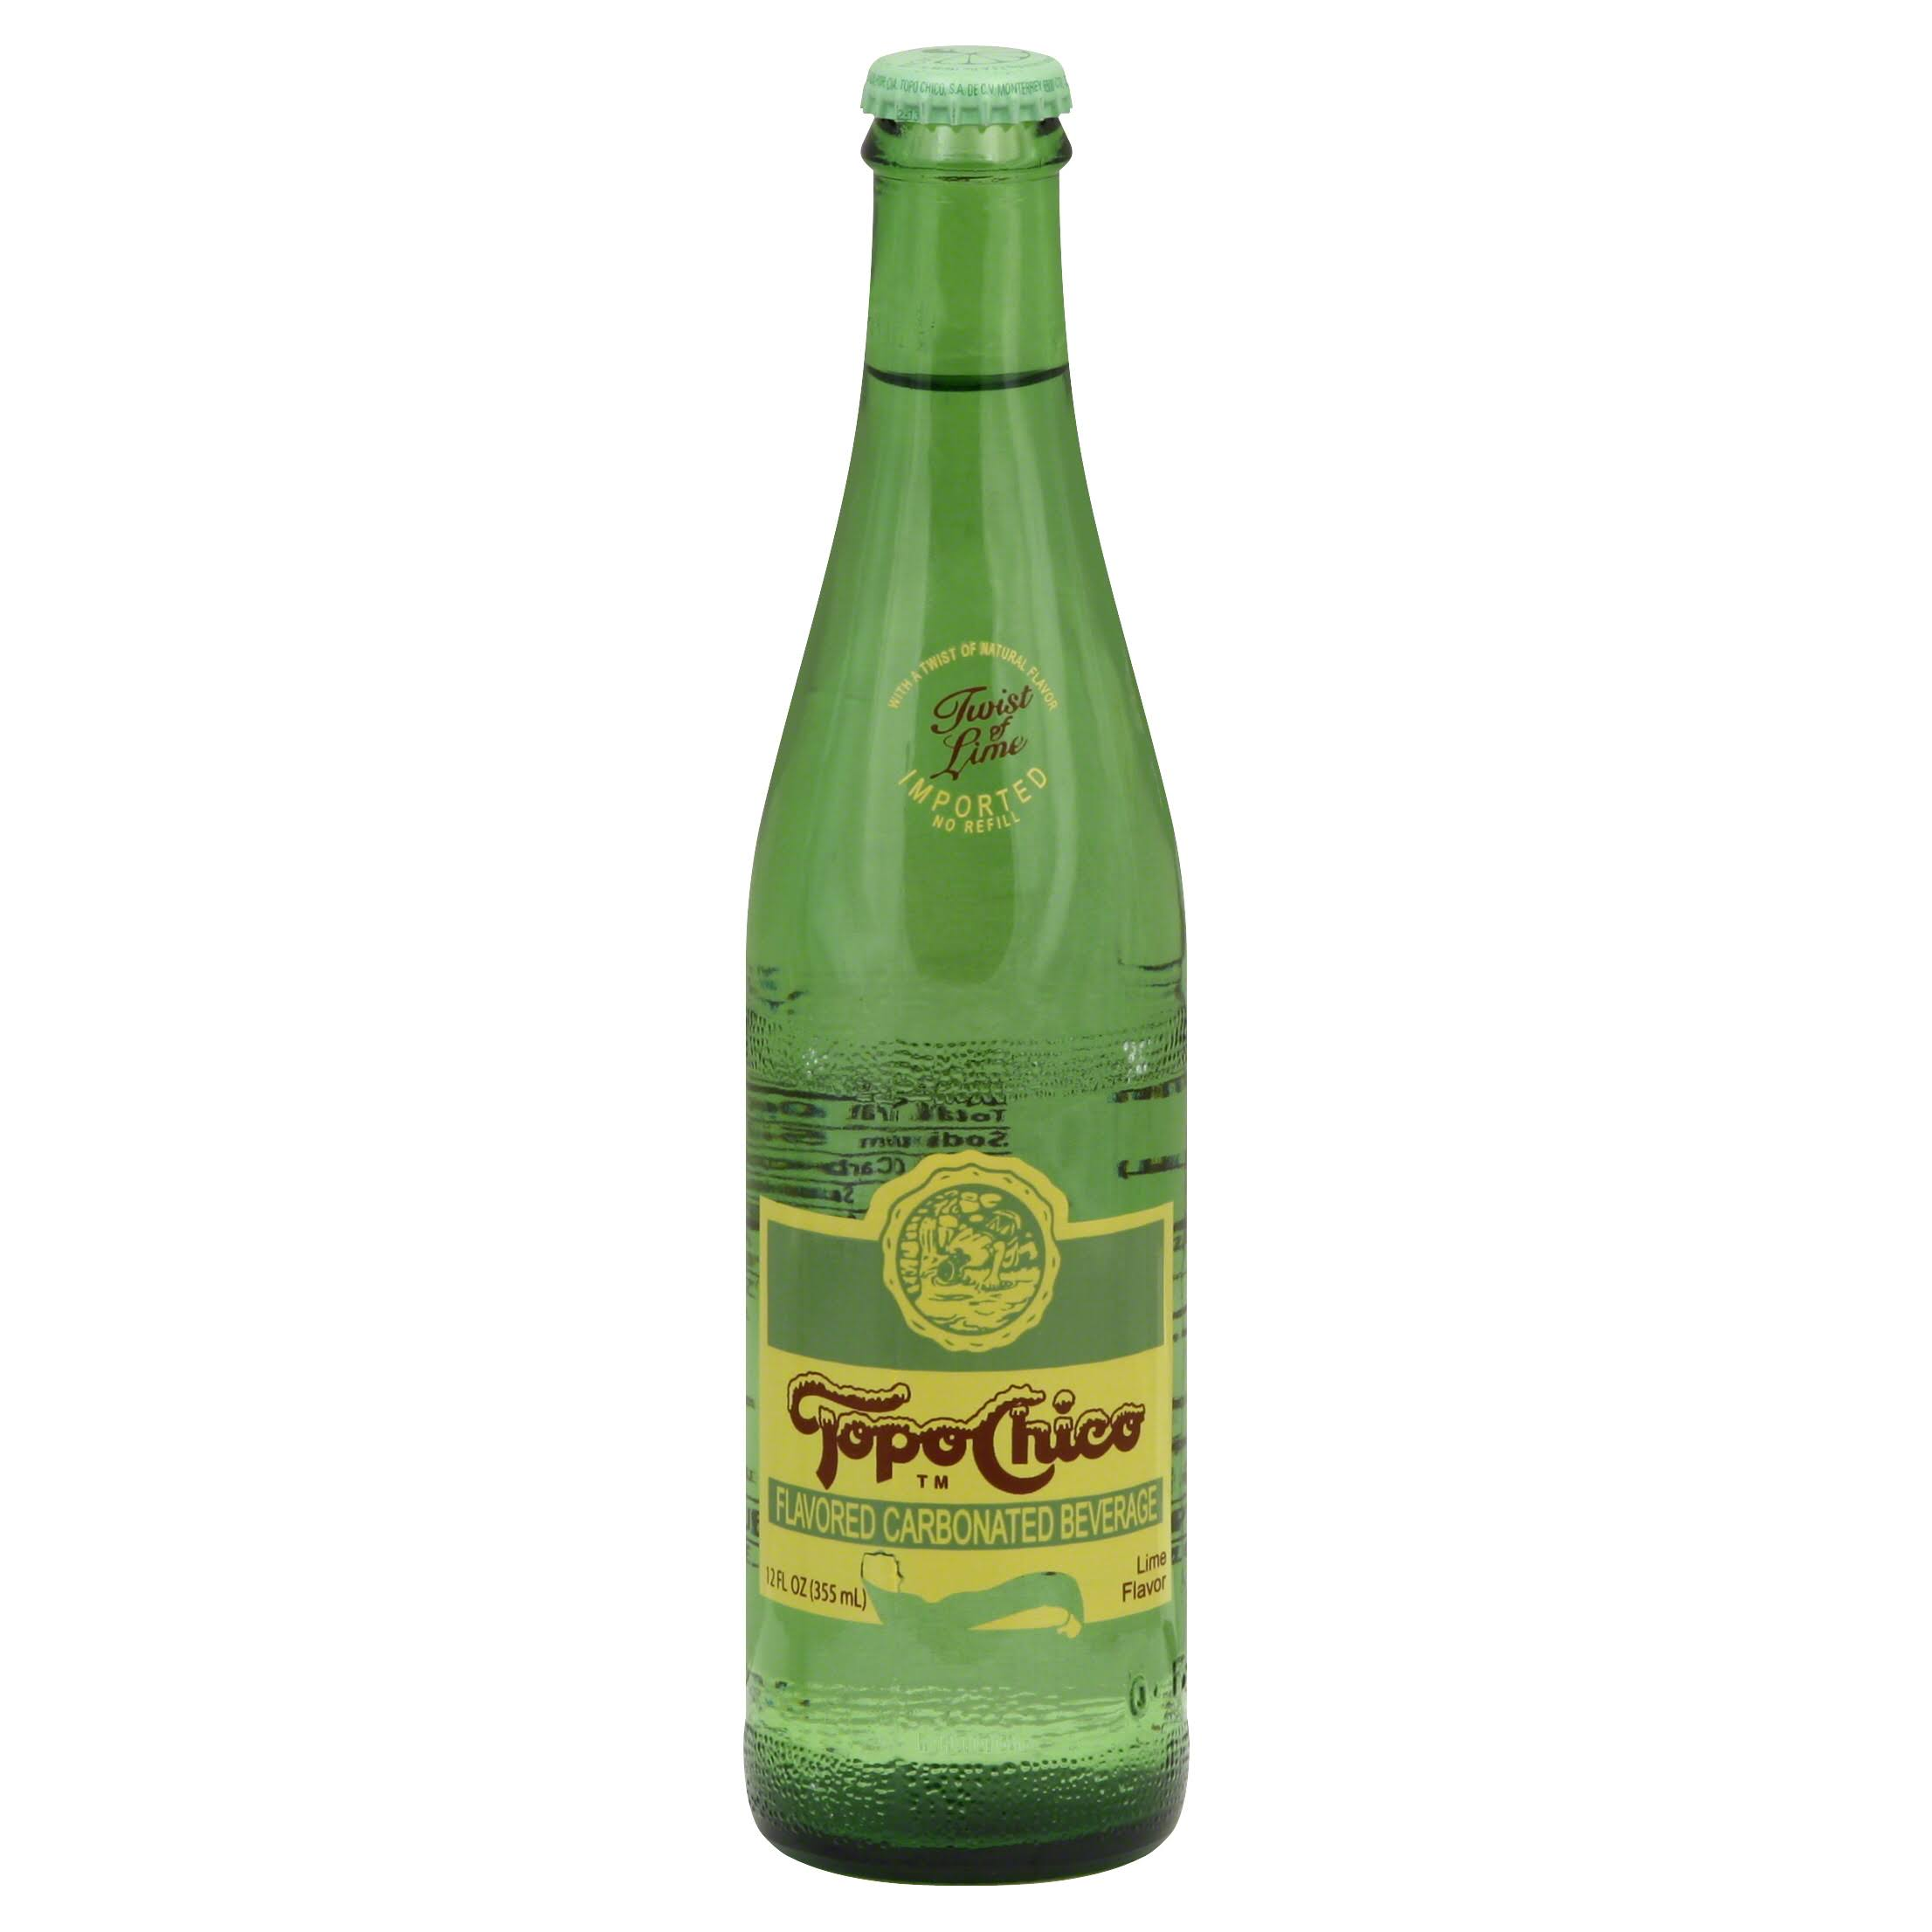 Topo Chico Mineral Water - Twist of Lime, 11.5oz